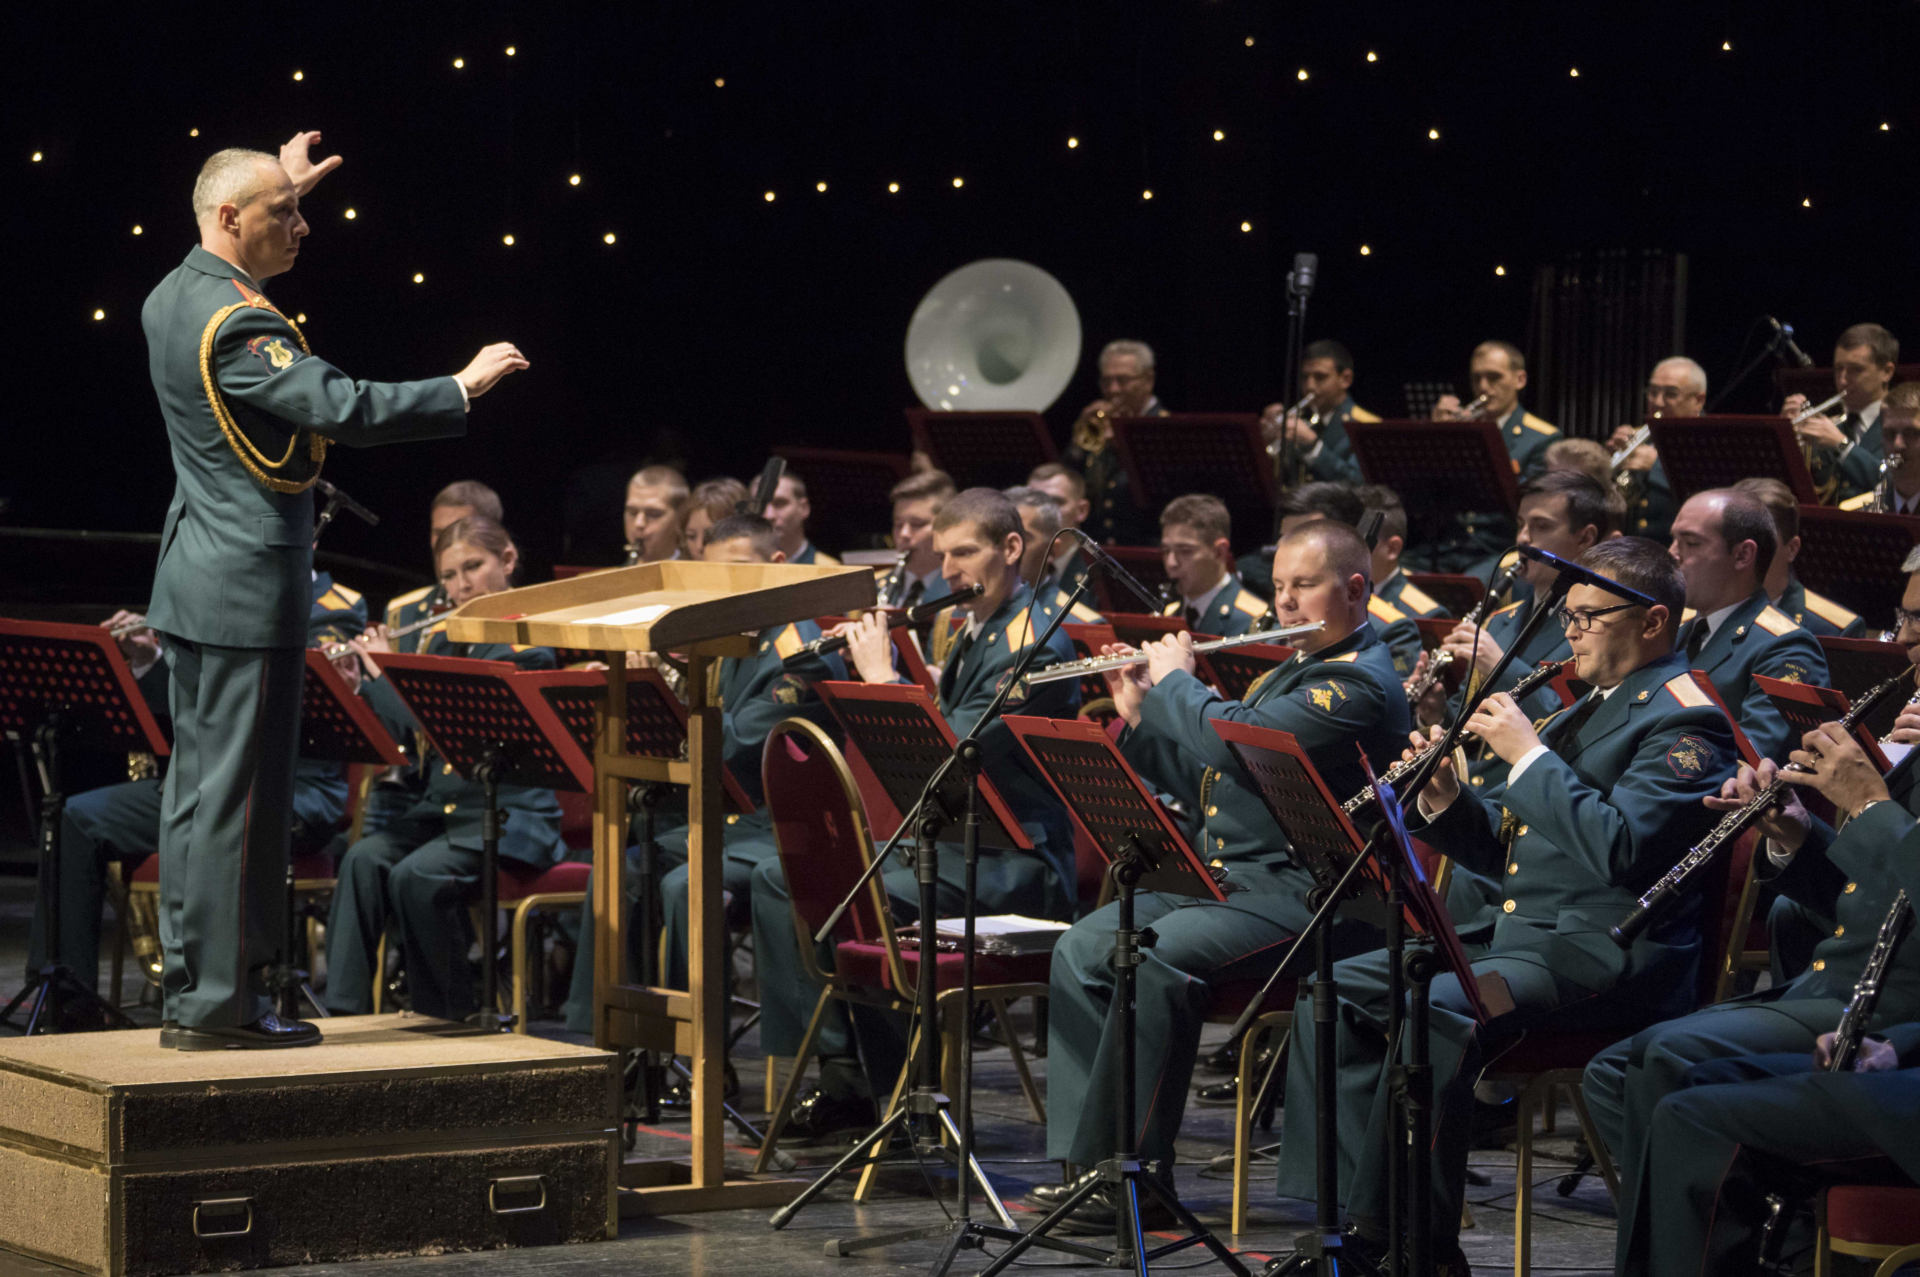 The Central Military Band of Russia Plays a Celebration